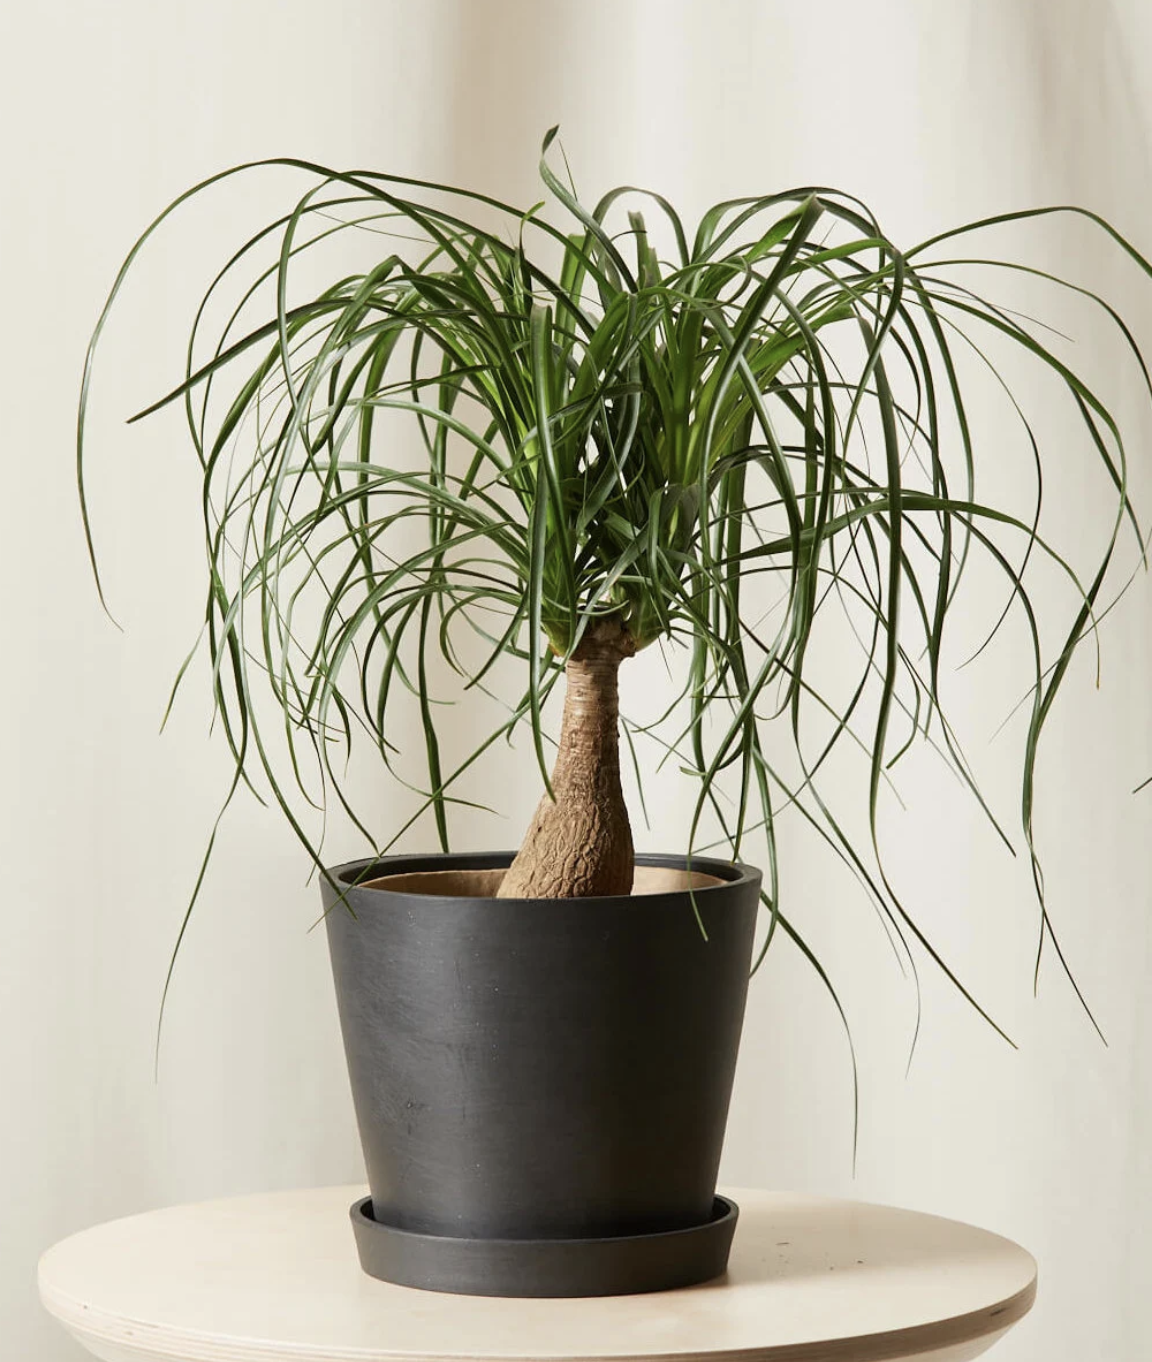 ponytail palm in a pot